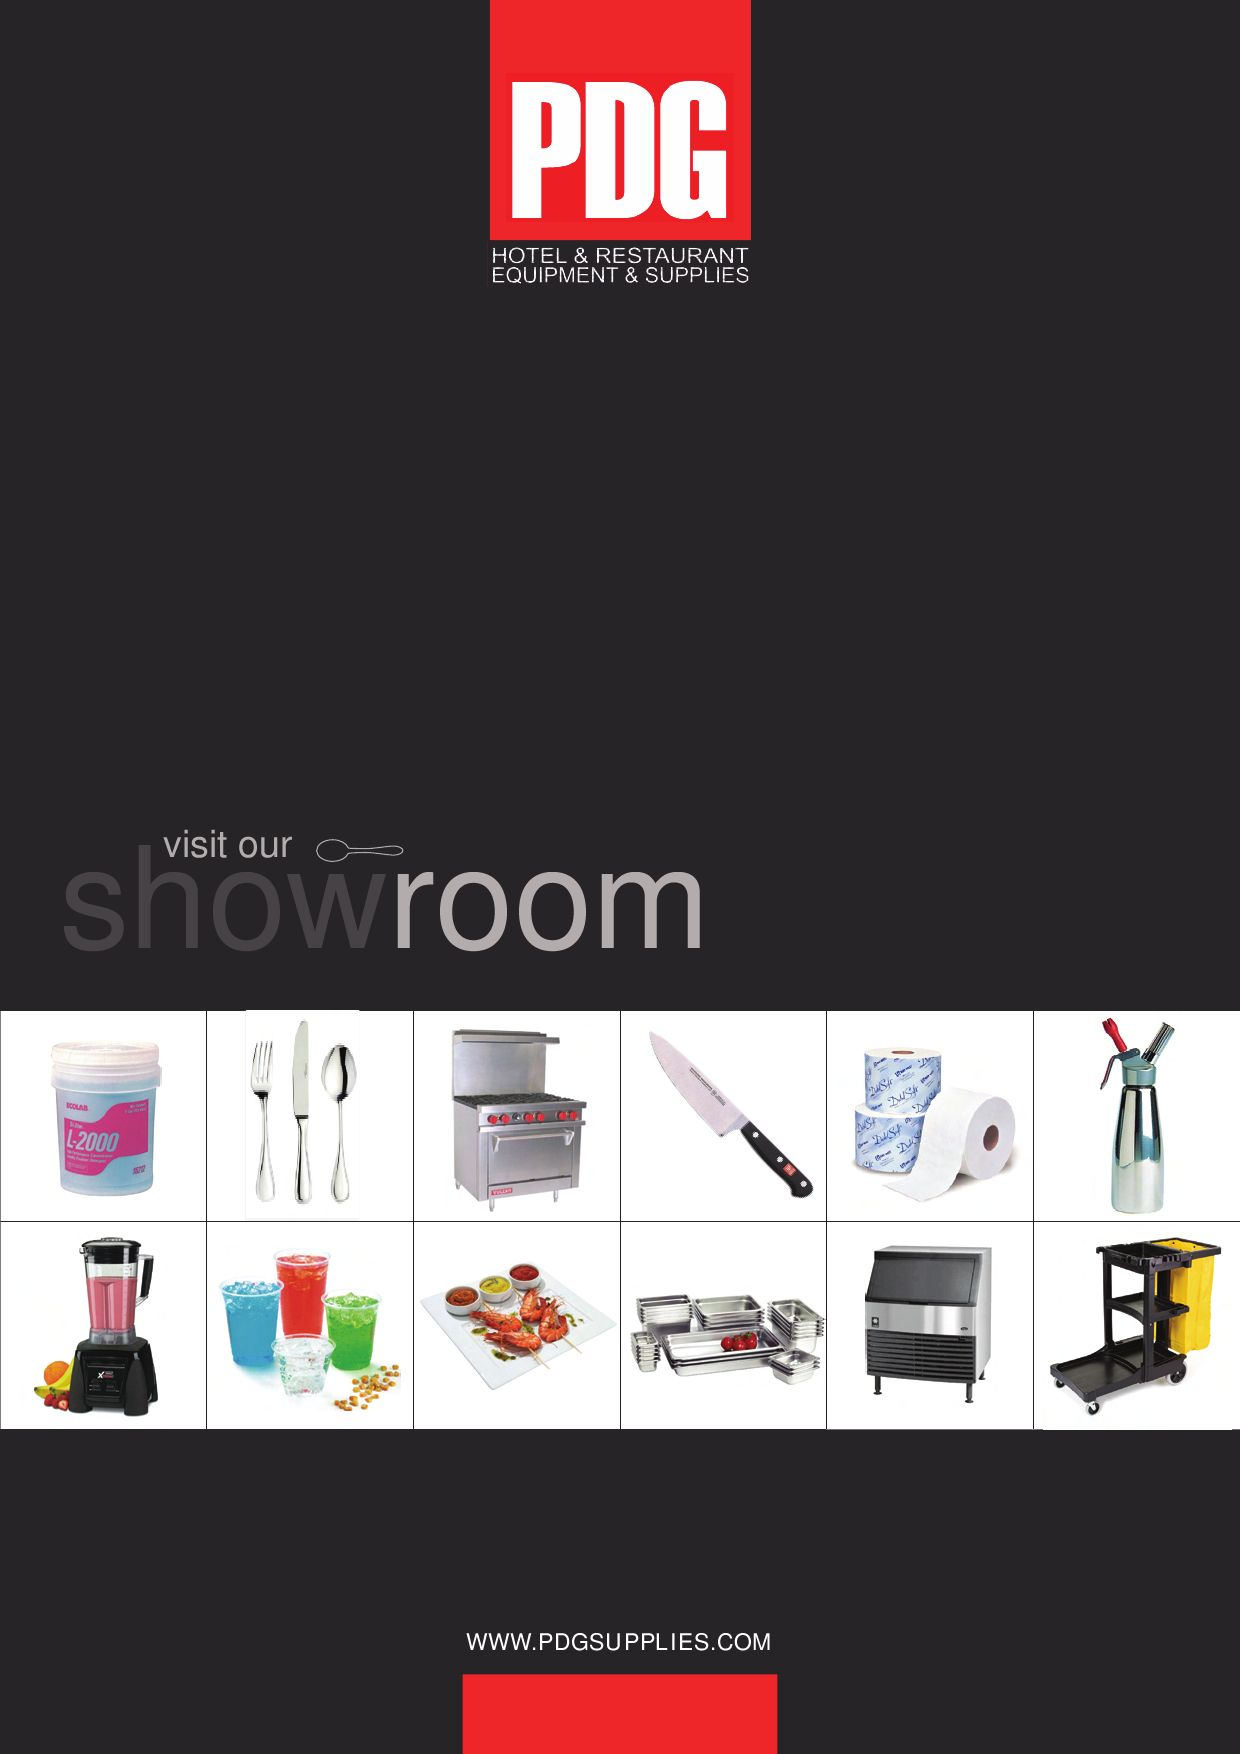 Tabourets Waterline Pdg Supplies Catalog 2010 2011 By Pdg Supplies Issuu